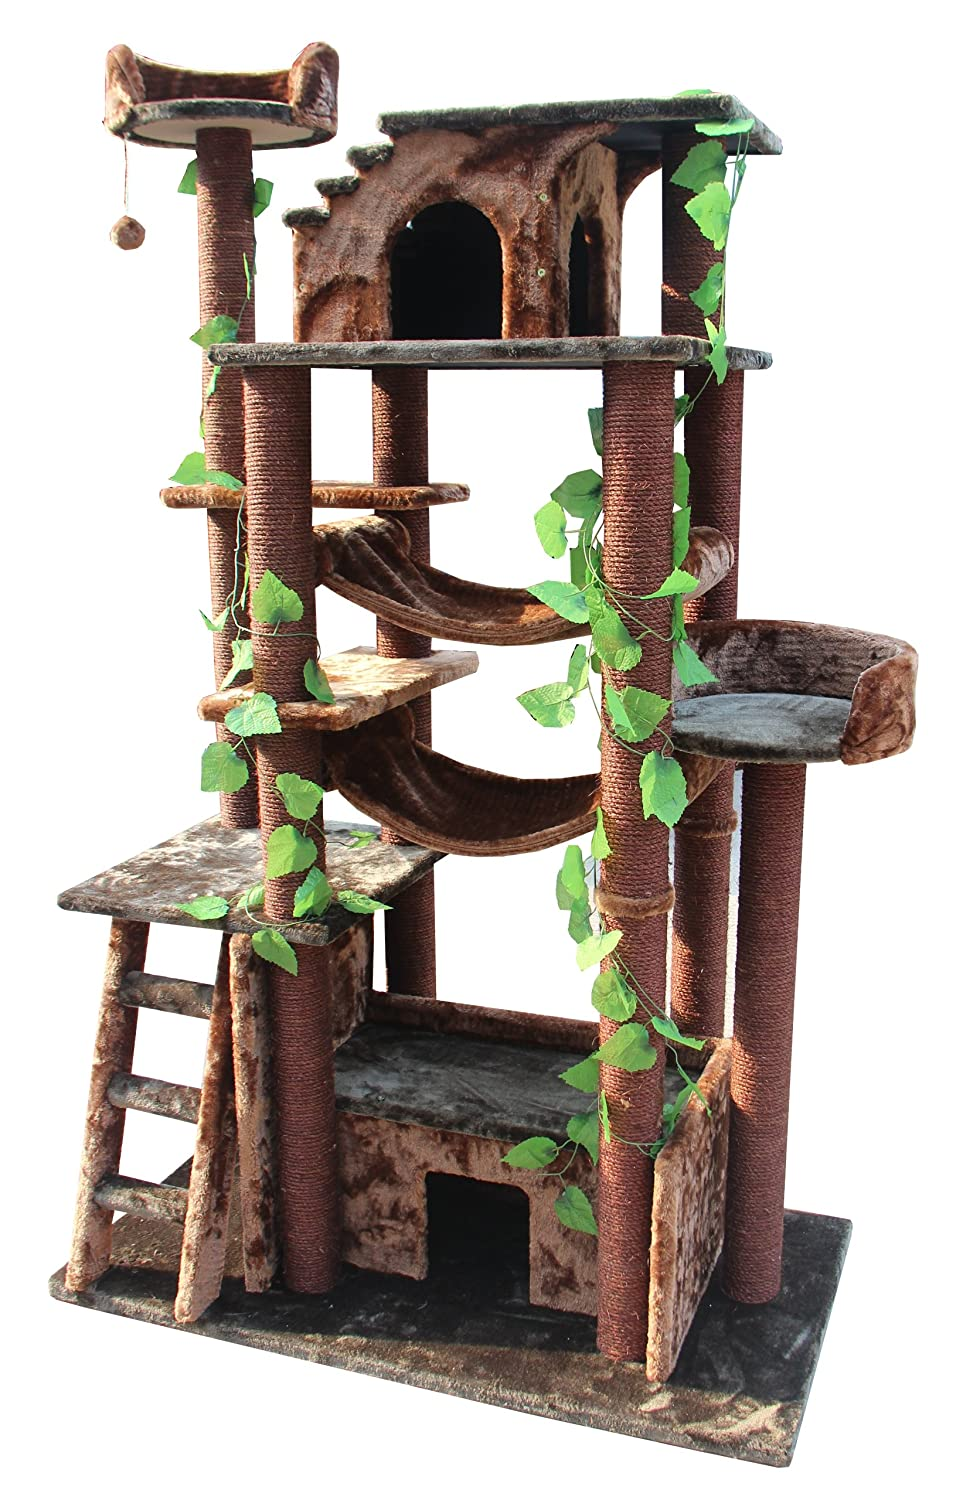 Anatomy Of Cat Claw Declaw furthermore Amazon Cat Tree likewise Modern Cat Tree Furniture as well Banana Leaf Cat Tree additionally Go Pet Club Cat Tree Condo. on cat scratching furniture